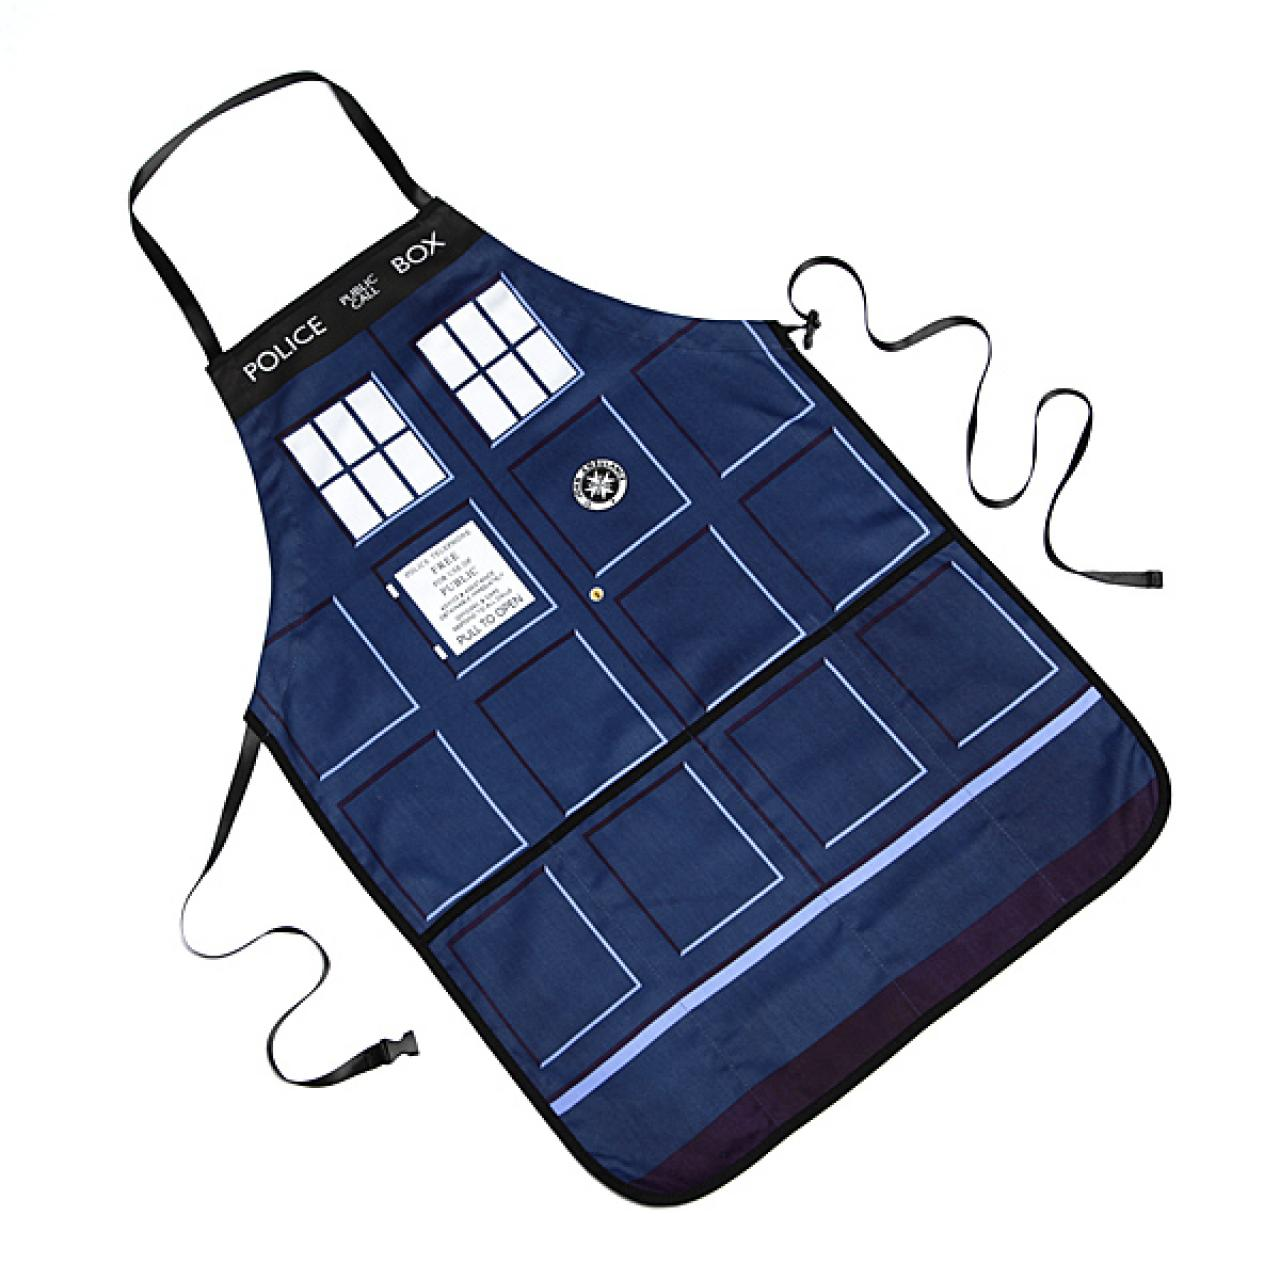 28 great gifts to celebrate the holidays and doctor who's 50th